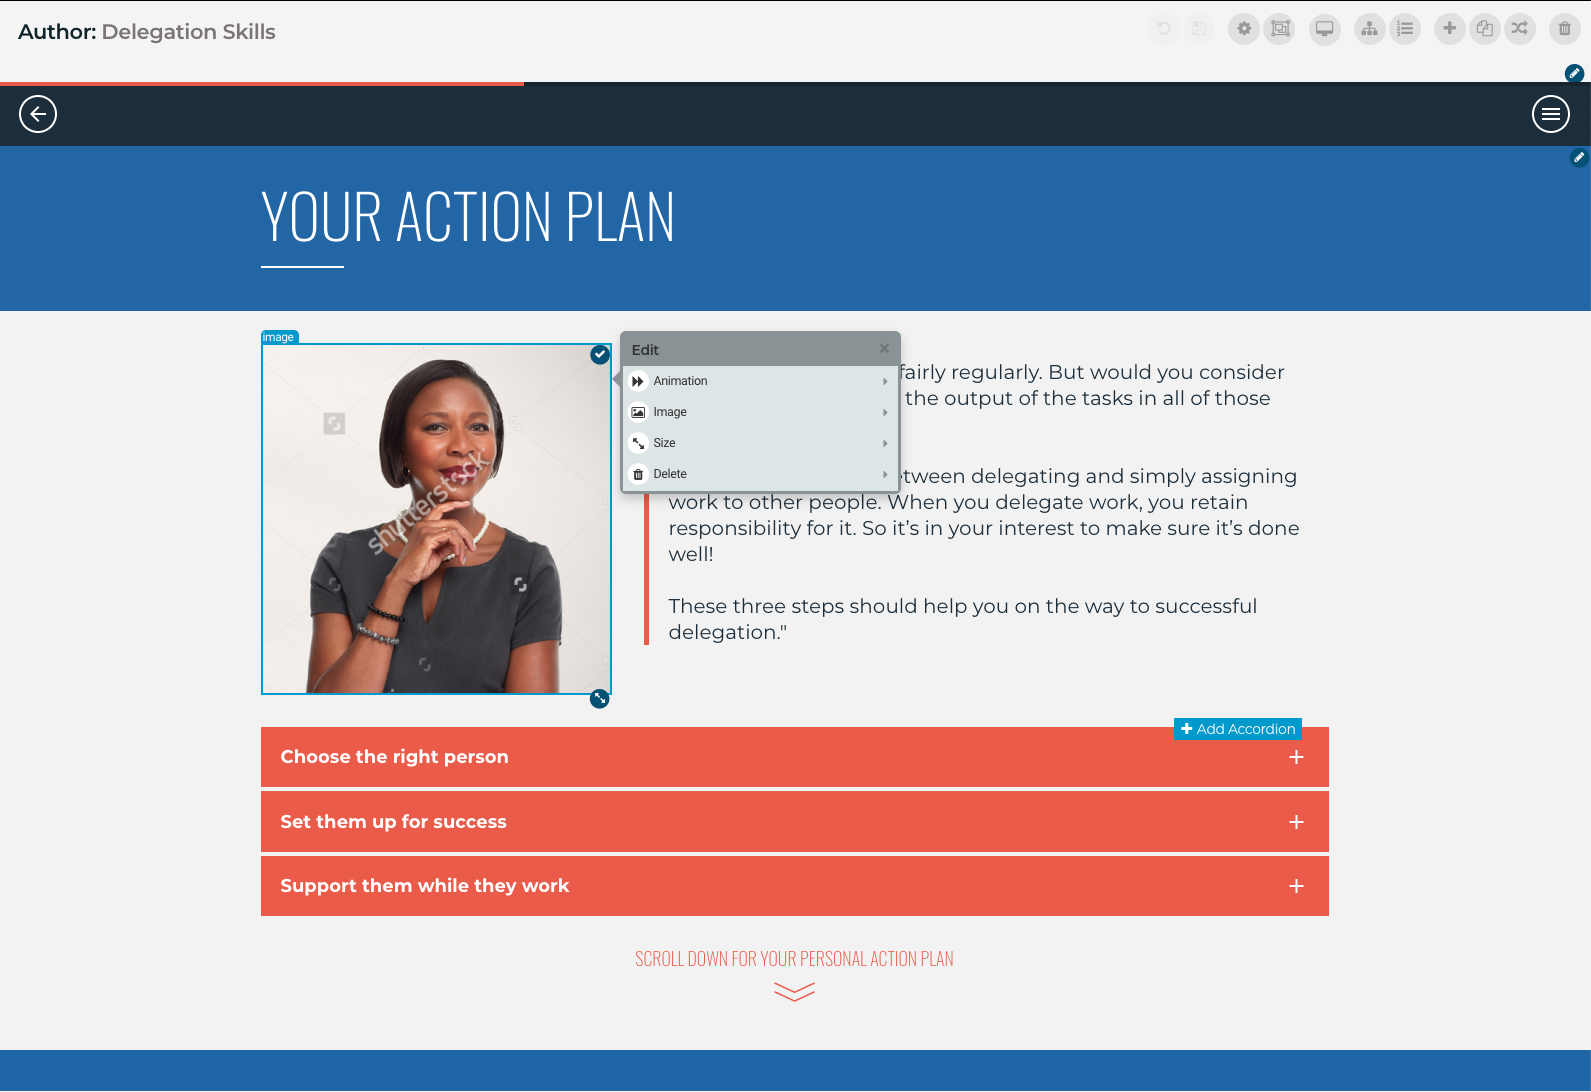 Elucidat's WYSIWYG authoring interface that makes it quick and easy to add and edit your content.